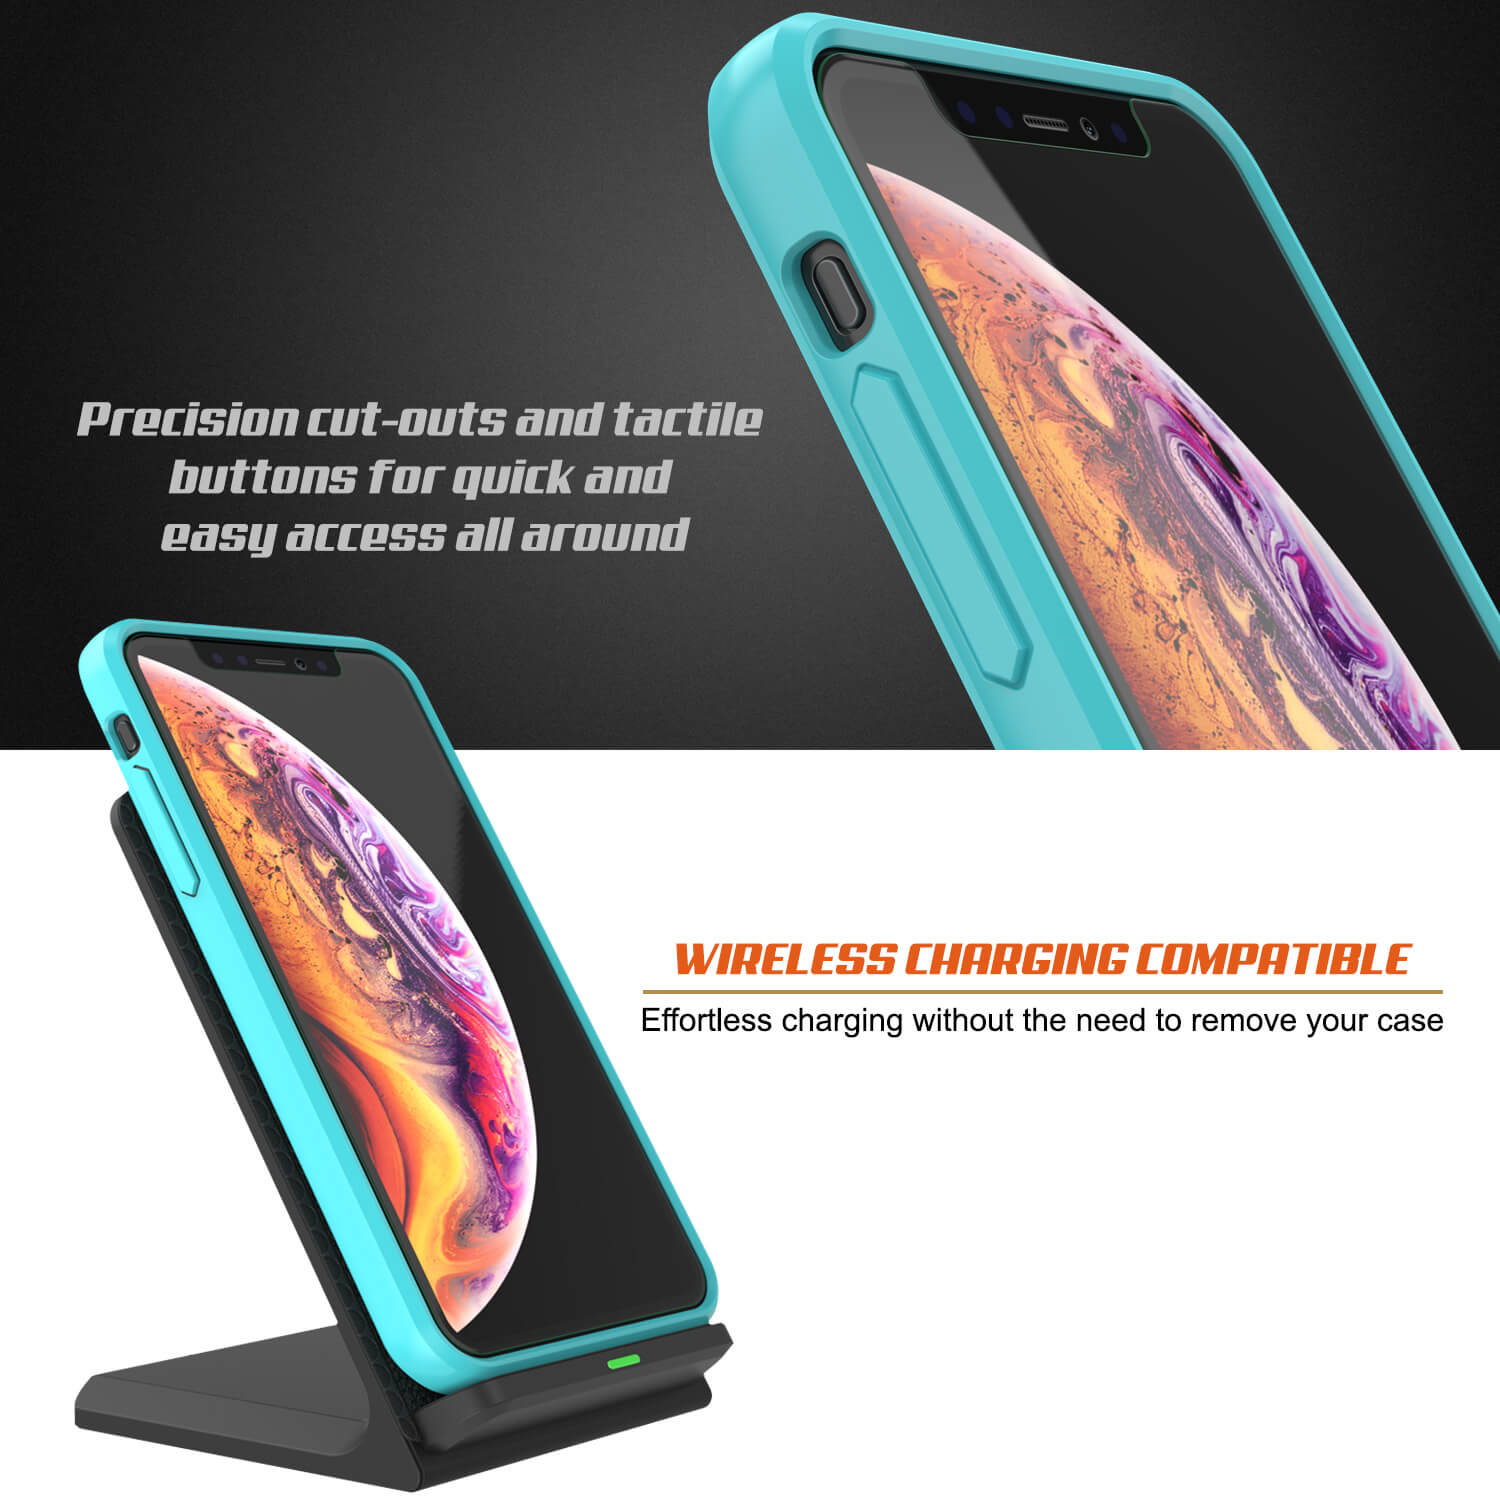 iPhone XS Max Case, PUNKcase [Lucid 2.0 Series] [Slim Fit] Armor Cover [Teal]